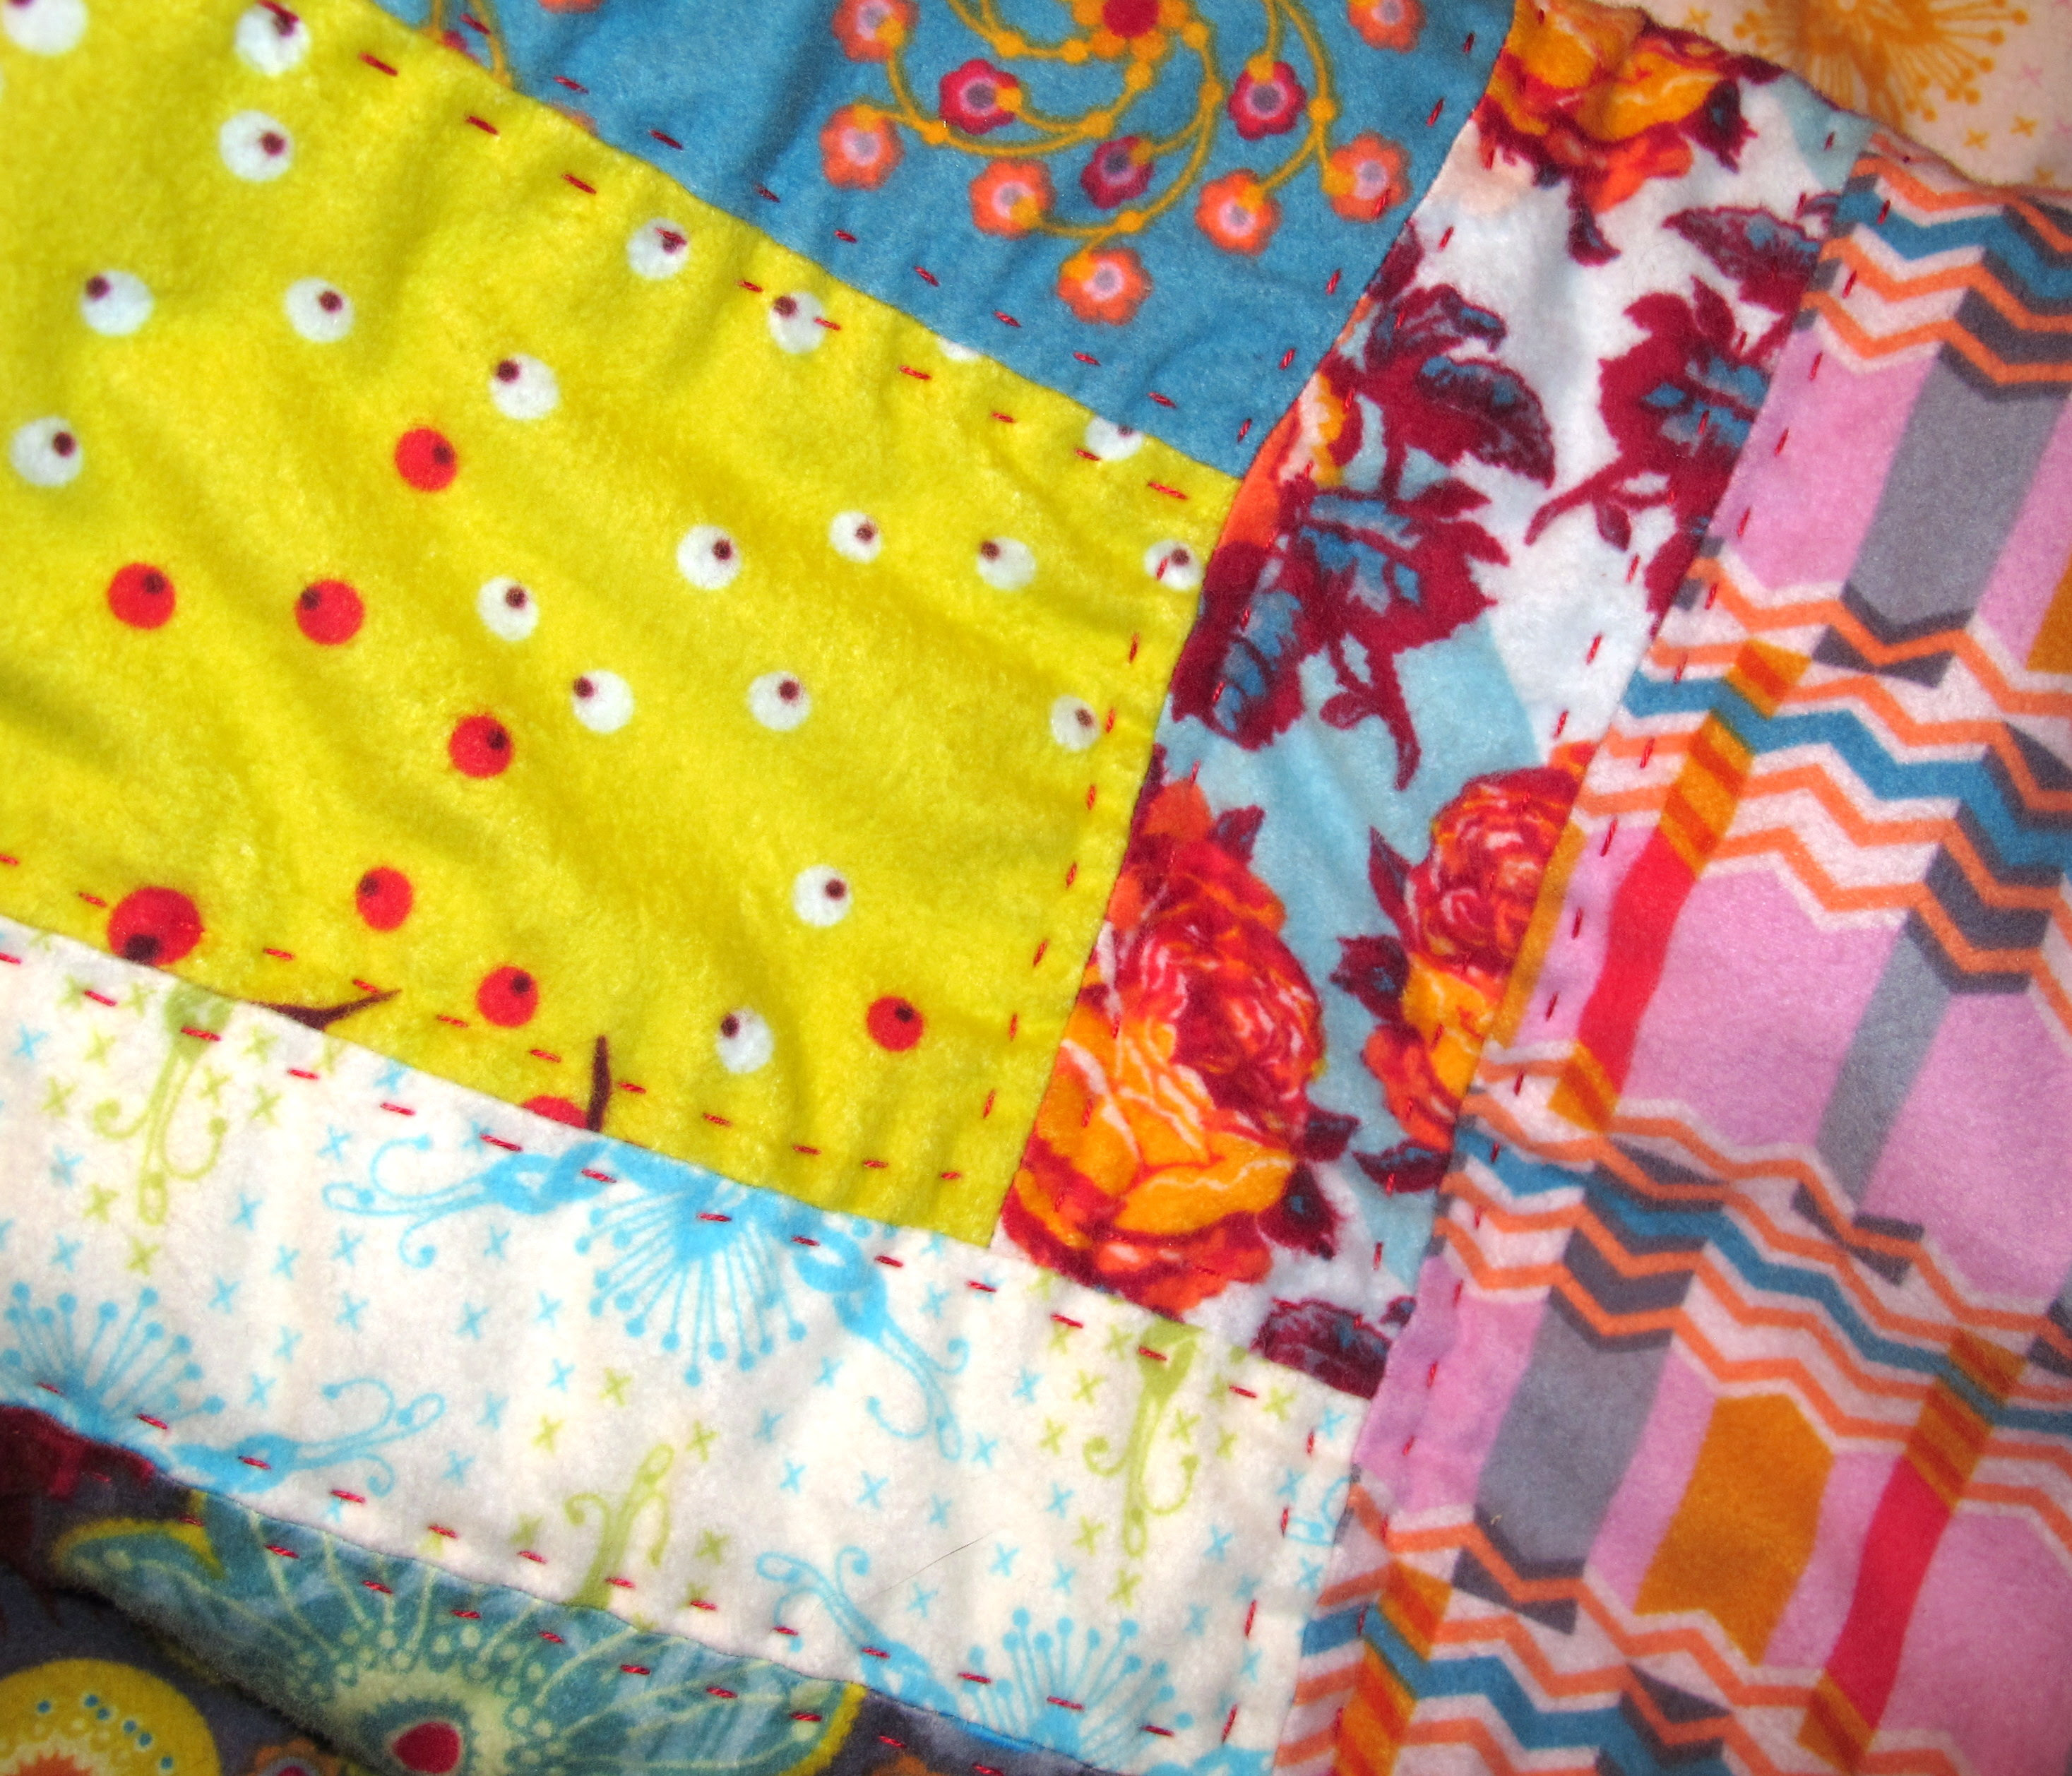 Handquilting with perle cotton